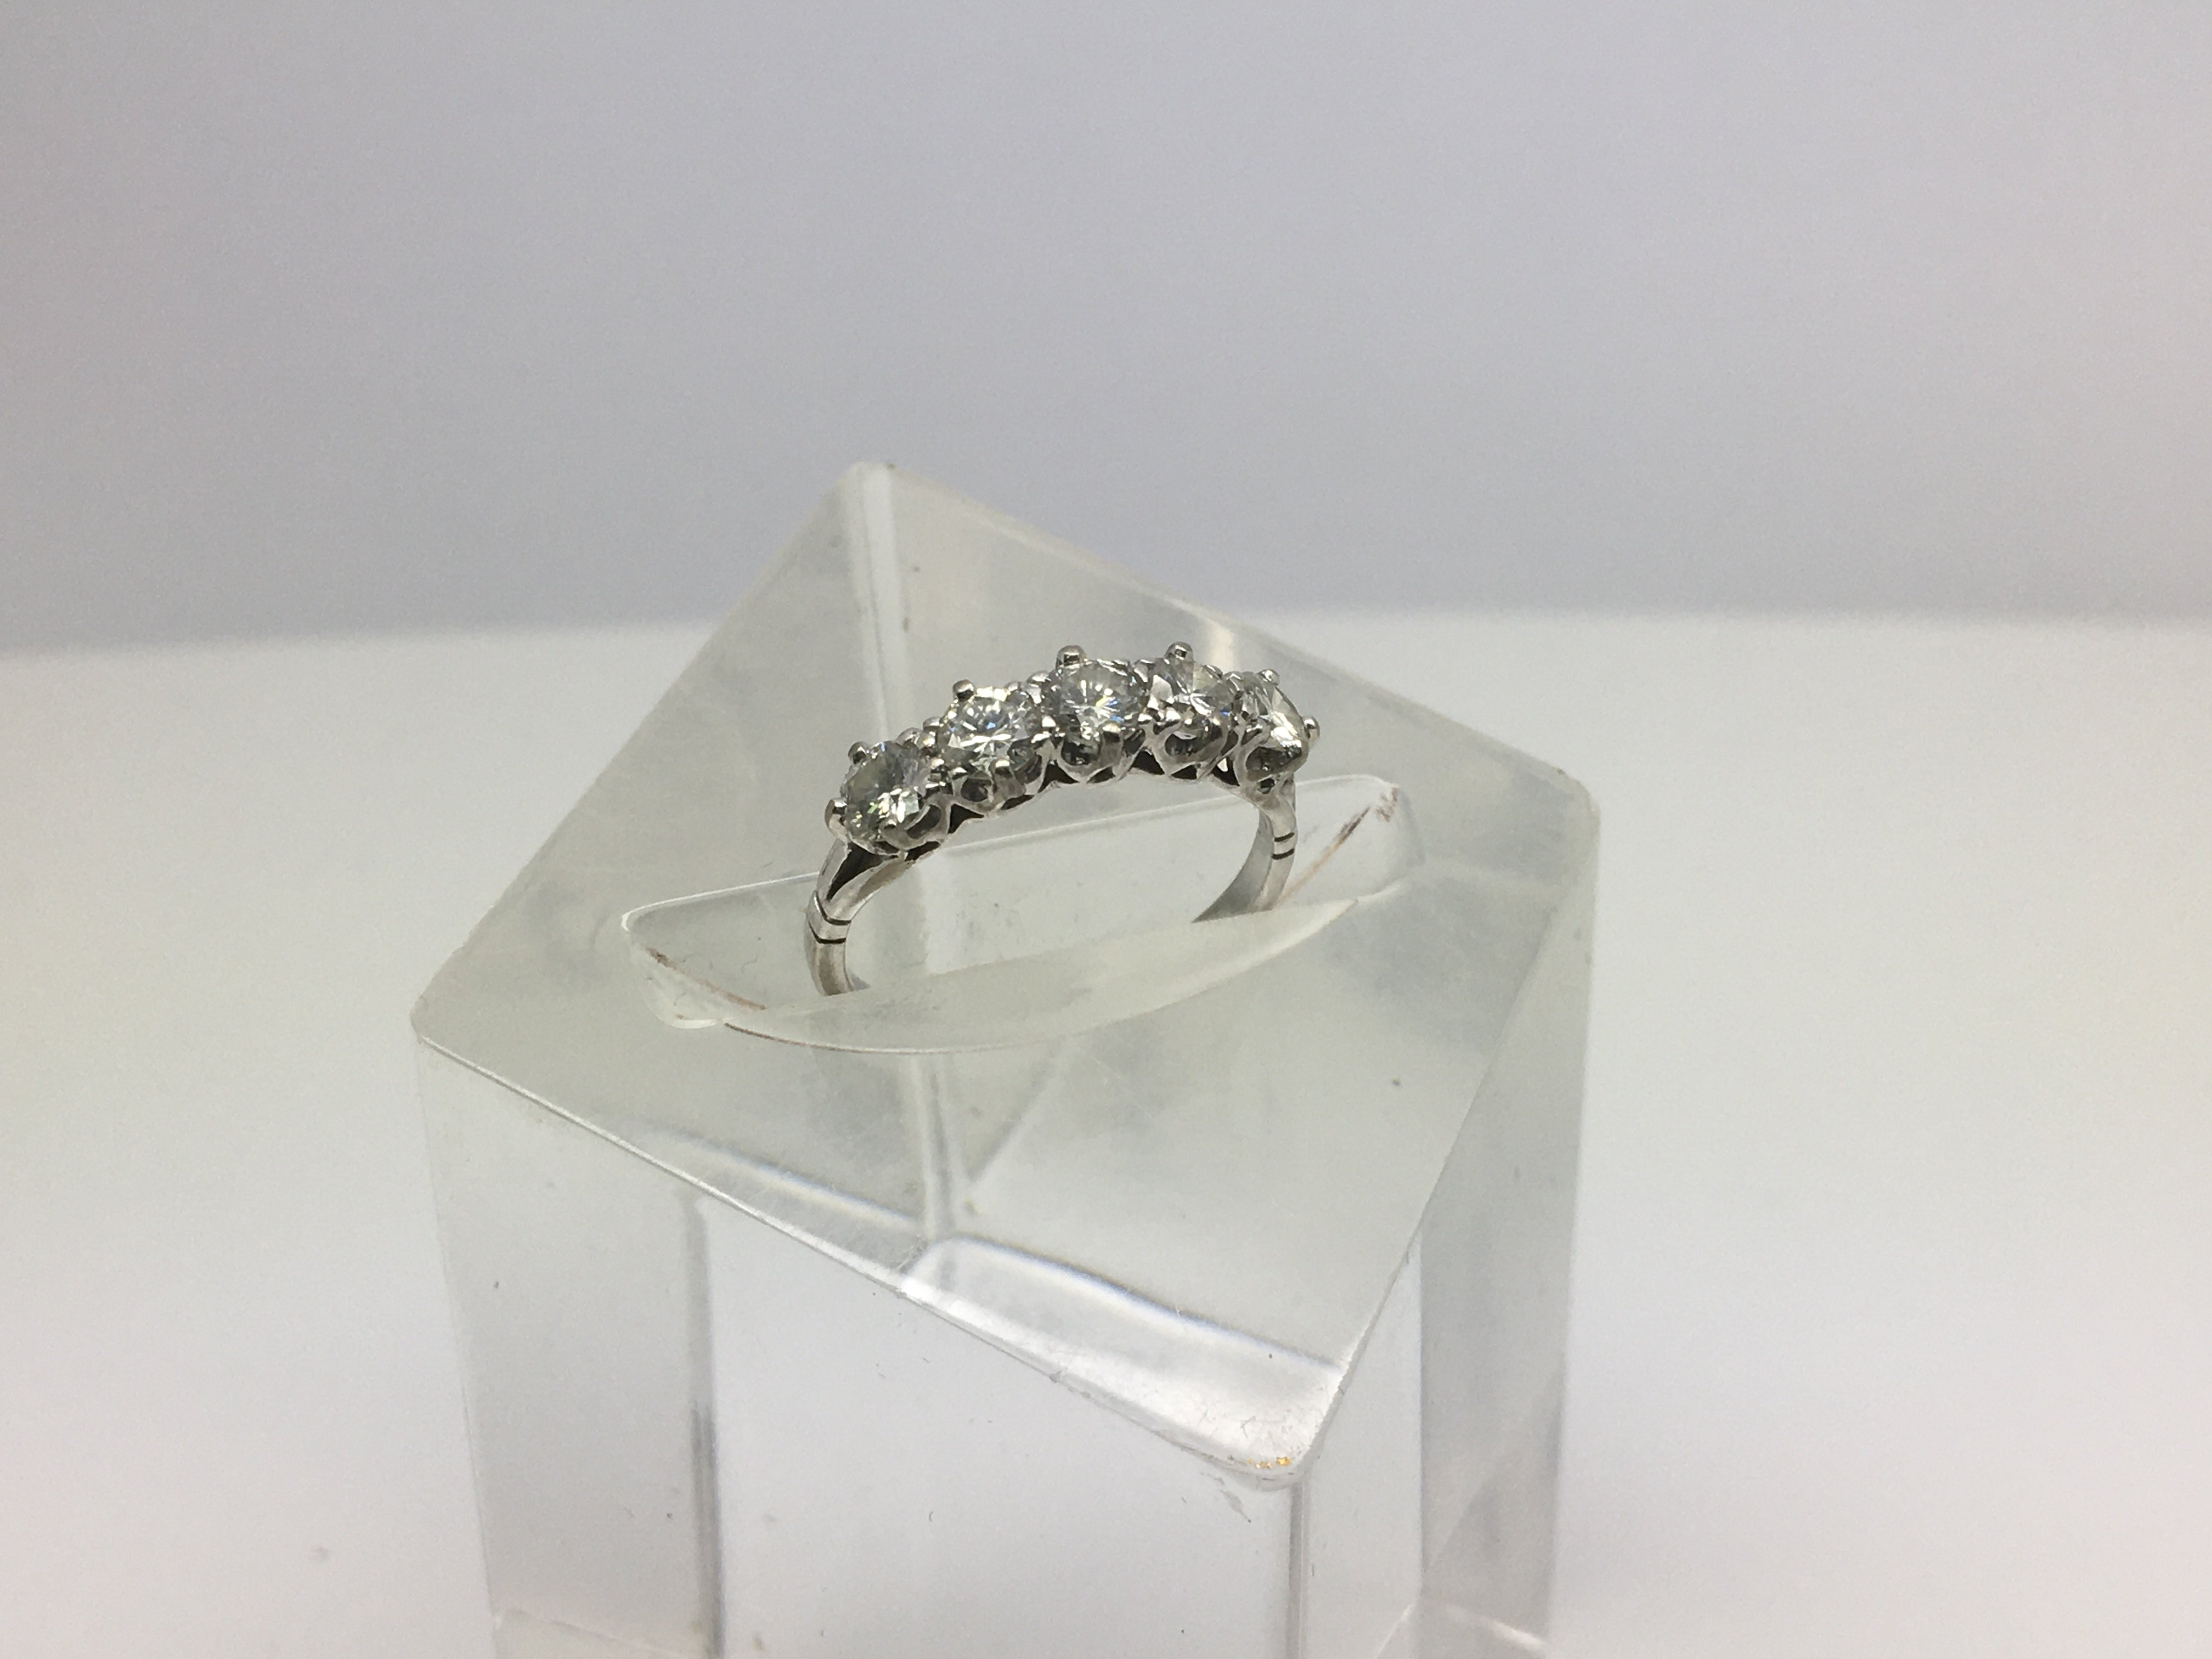 Lot 11 - A white metal ring, possibly platinum, with a row